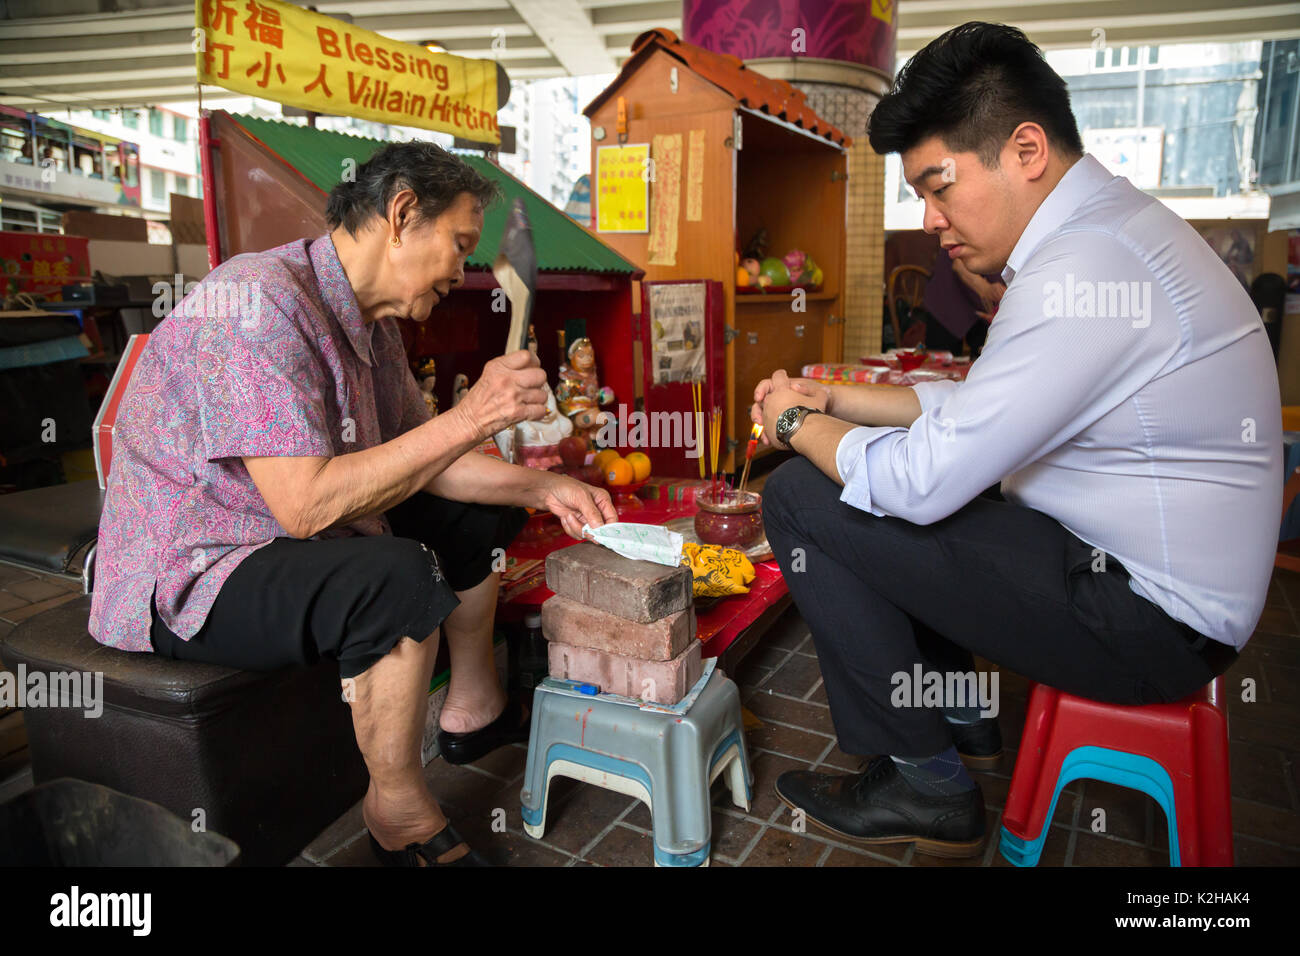 Hong Kong lady doing the  'vilain hitting' sorcery practice - local beliefs - Stock Image